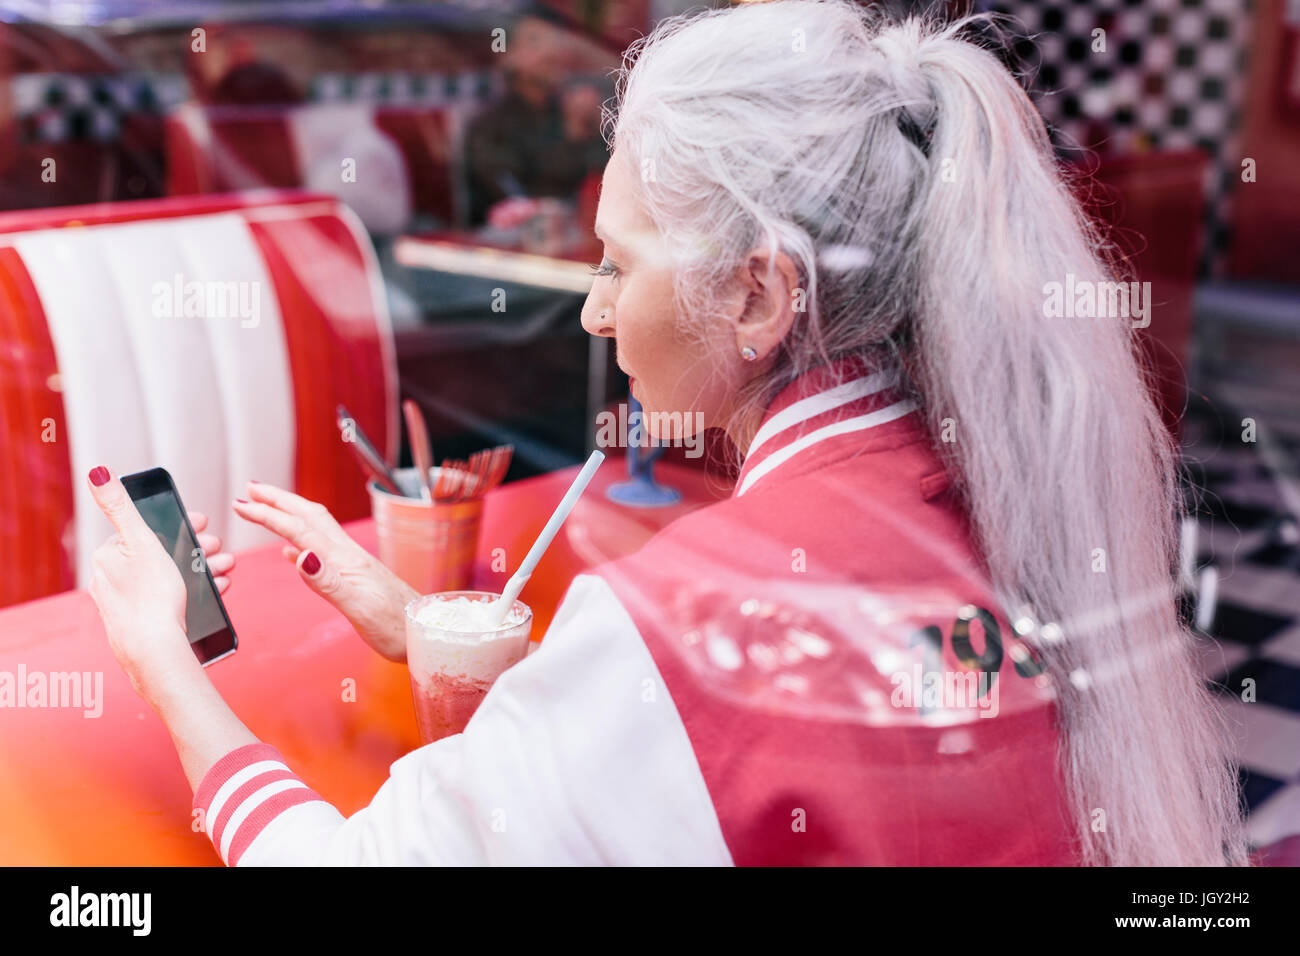 Mature woman in baseball jacket looking at smartphone in 1950's diner - Stock Image